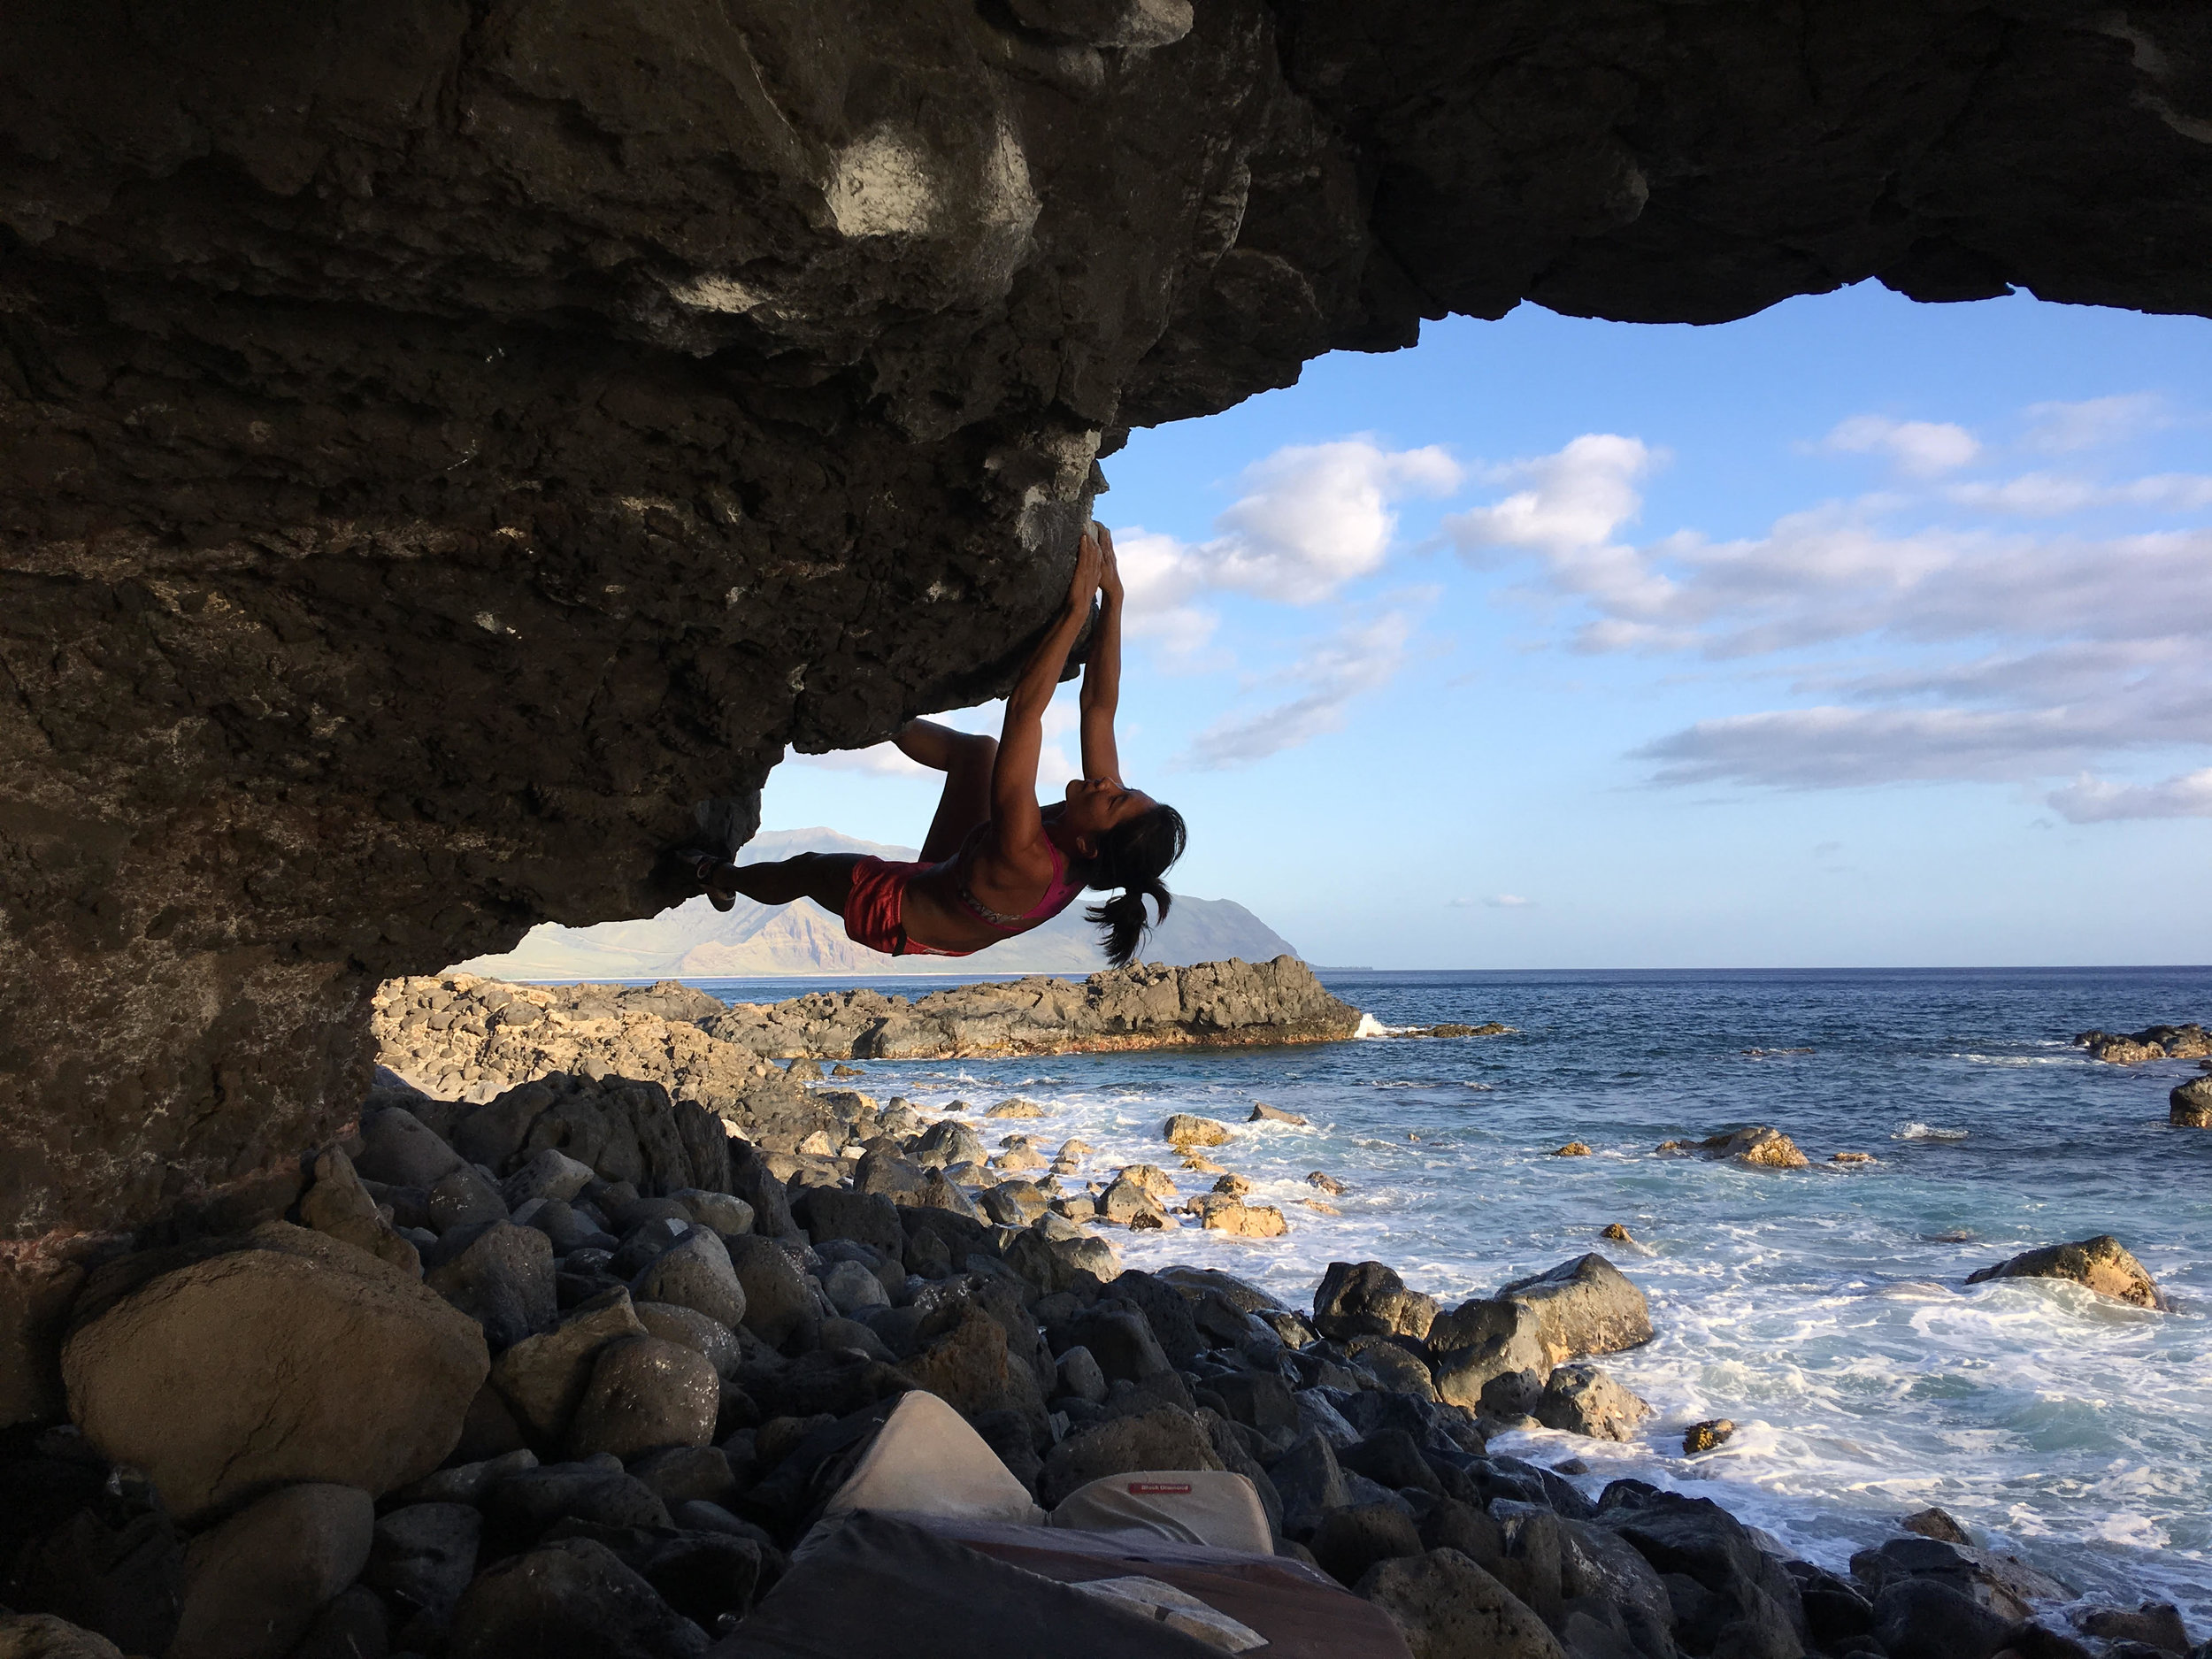 Wai Yi working the moves on Bottom Rock, V10 at the Arch (Photo credit: Trisha Maxwell)